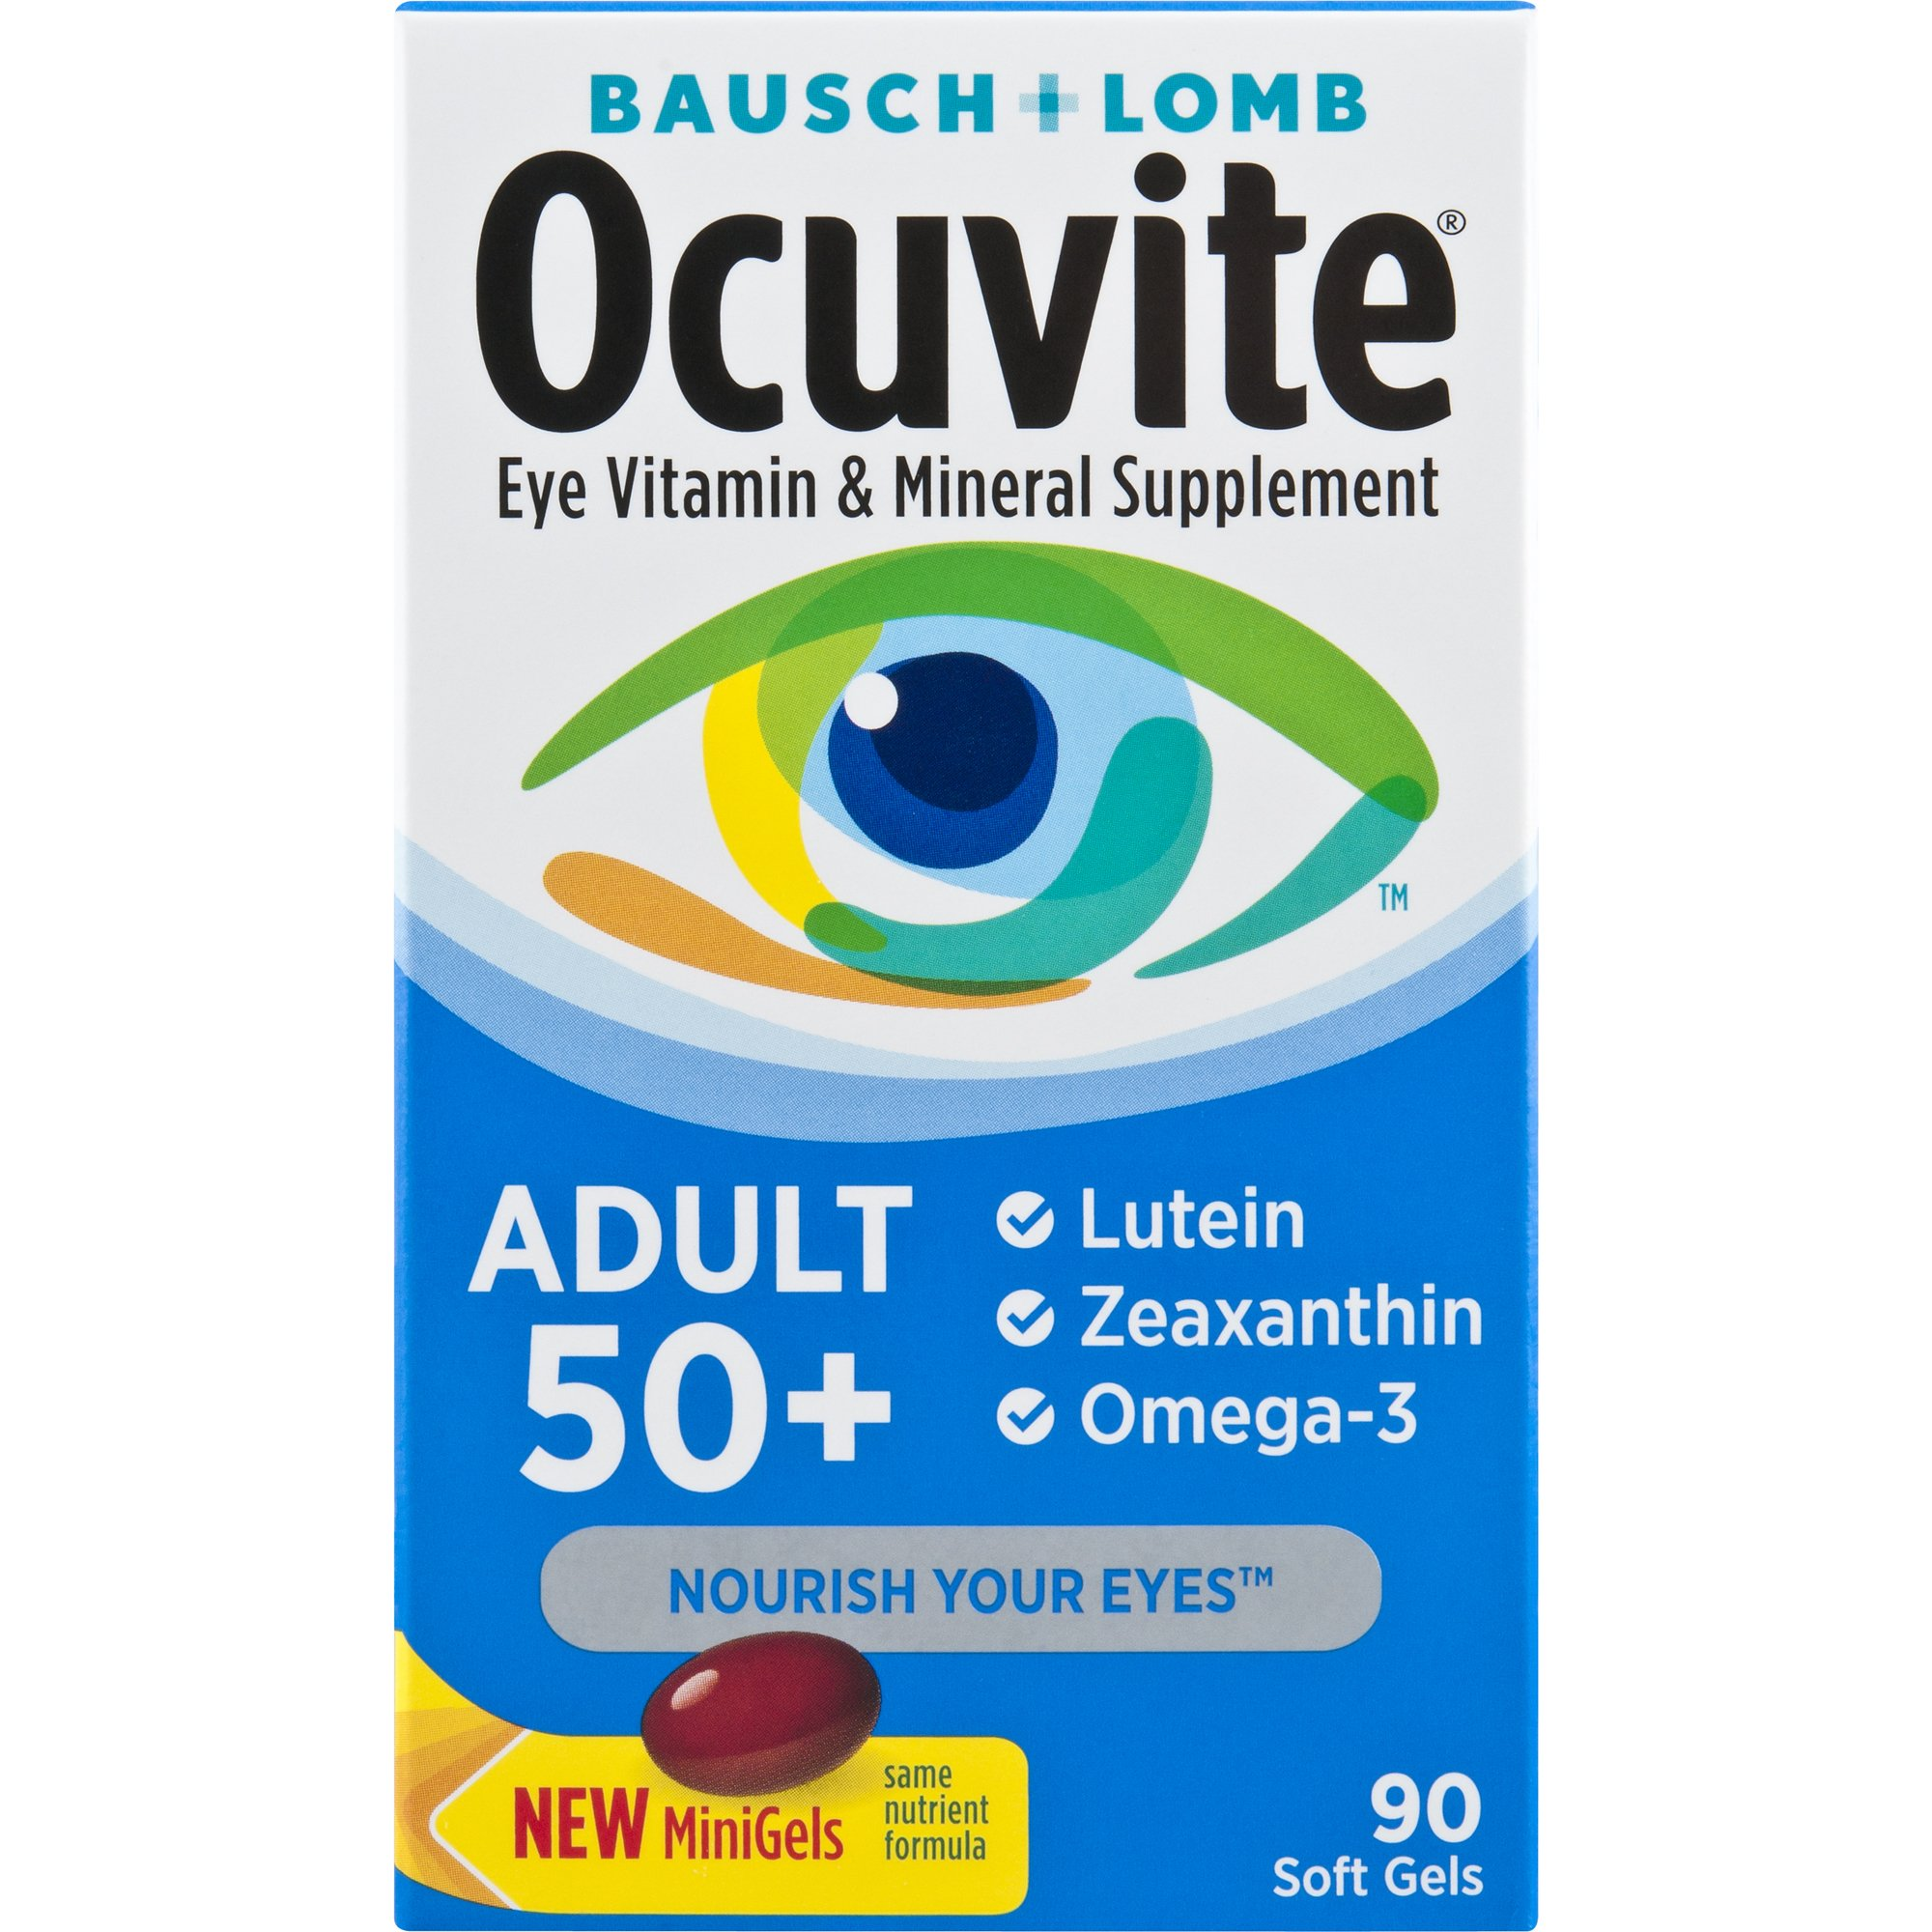 Bausch + Lomb Ocuvite Adult 50+ Vitamin & Mineral Supplement with Lutein, Zeaxanthin, and Omega-3, Soft Gels, 90-Count by Ocuvite